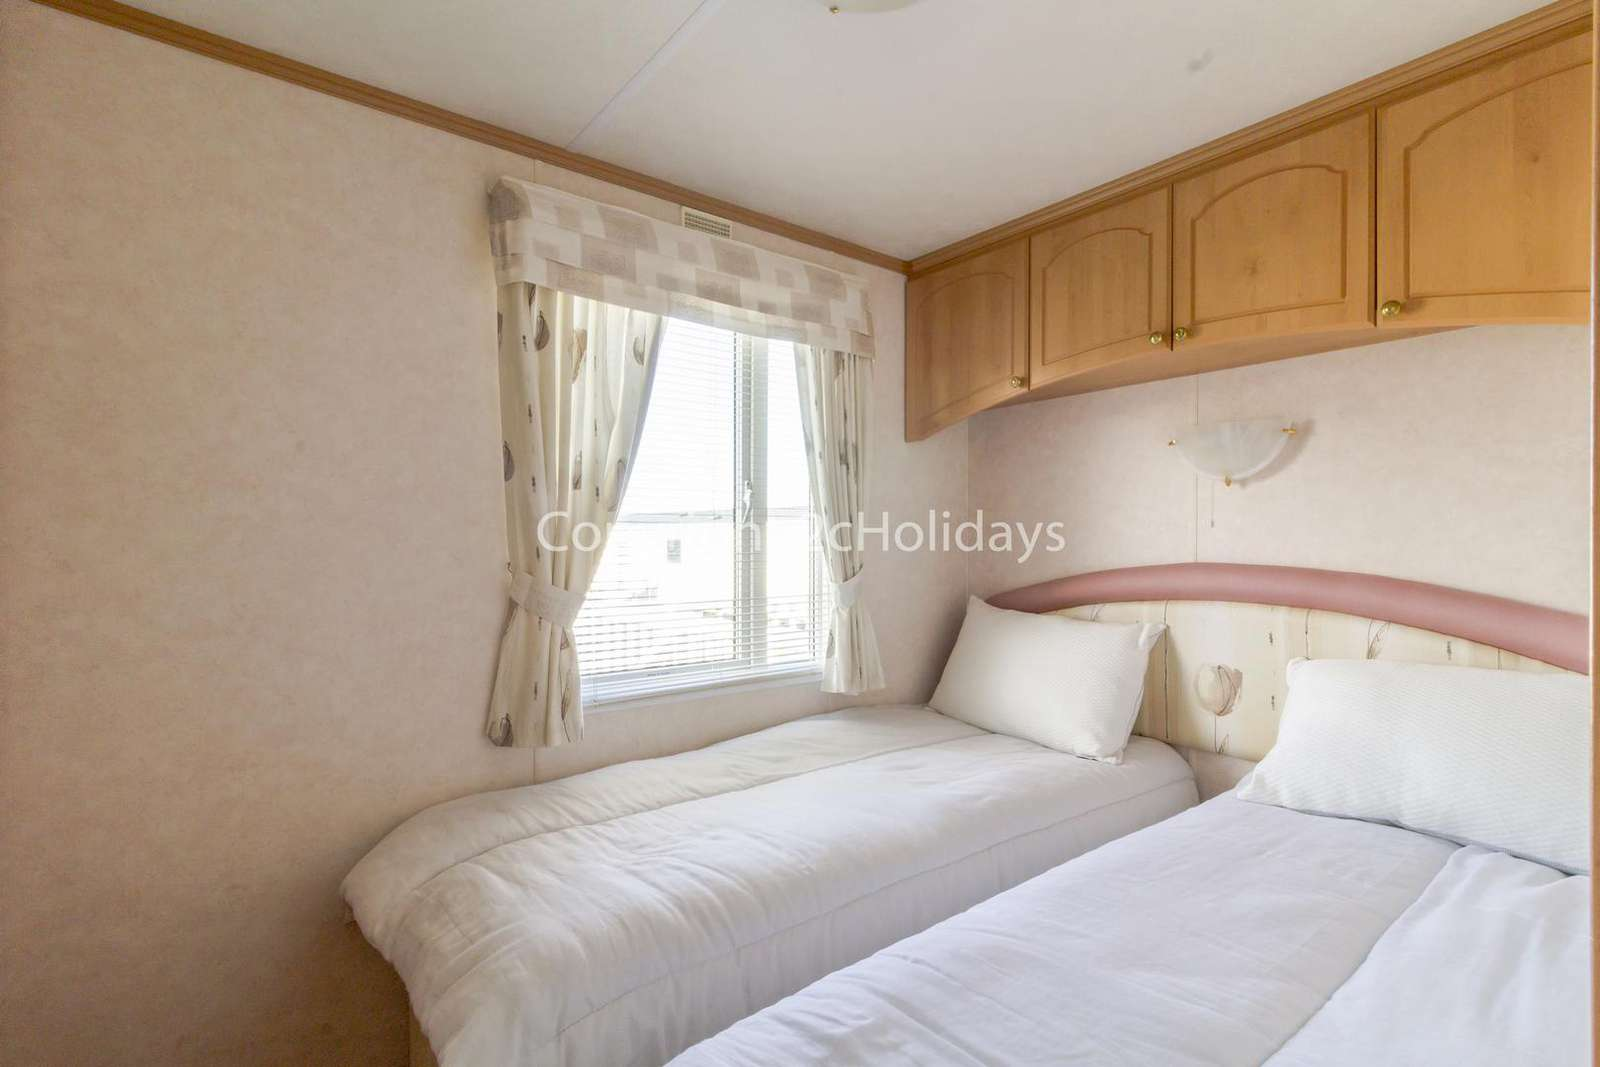 Manor Park Holiday Park, in Norfolk, perfect for families.